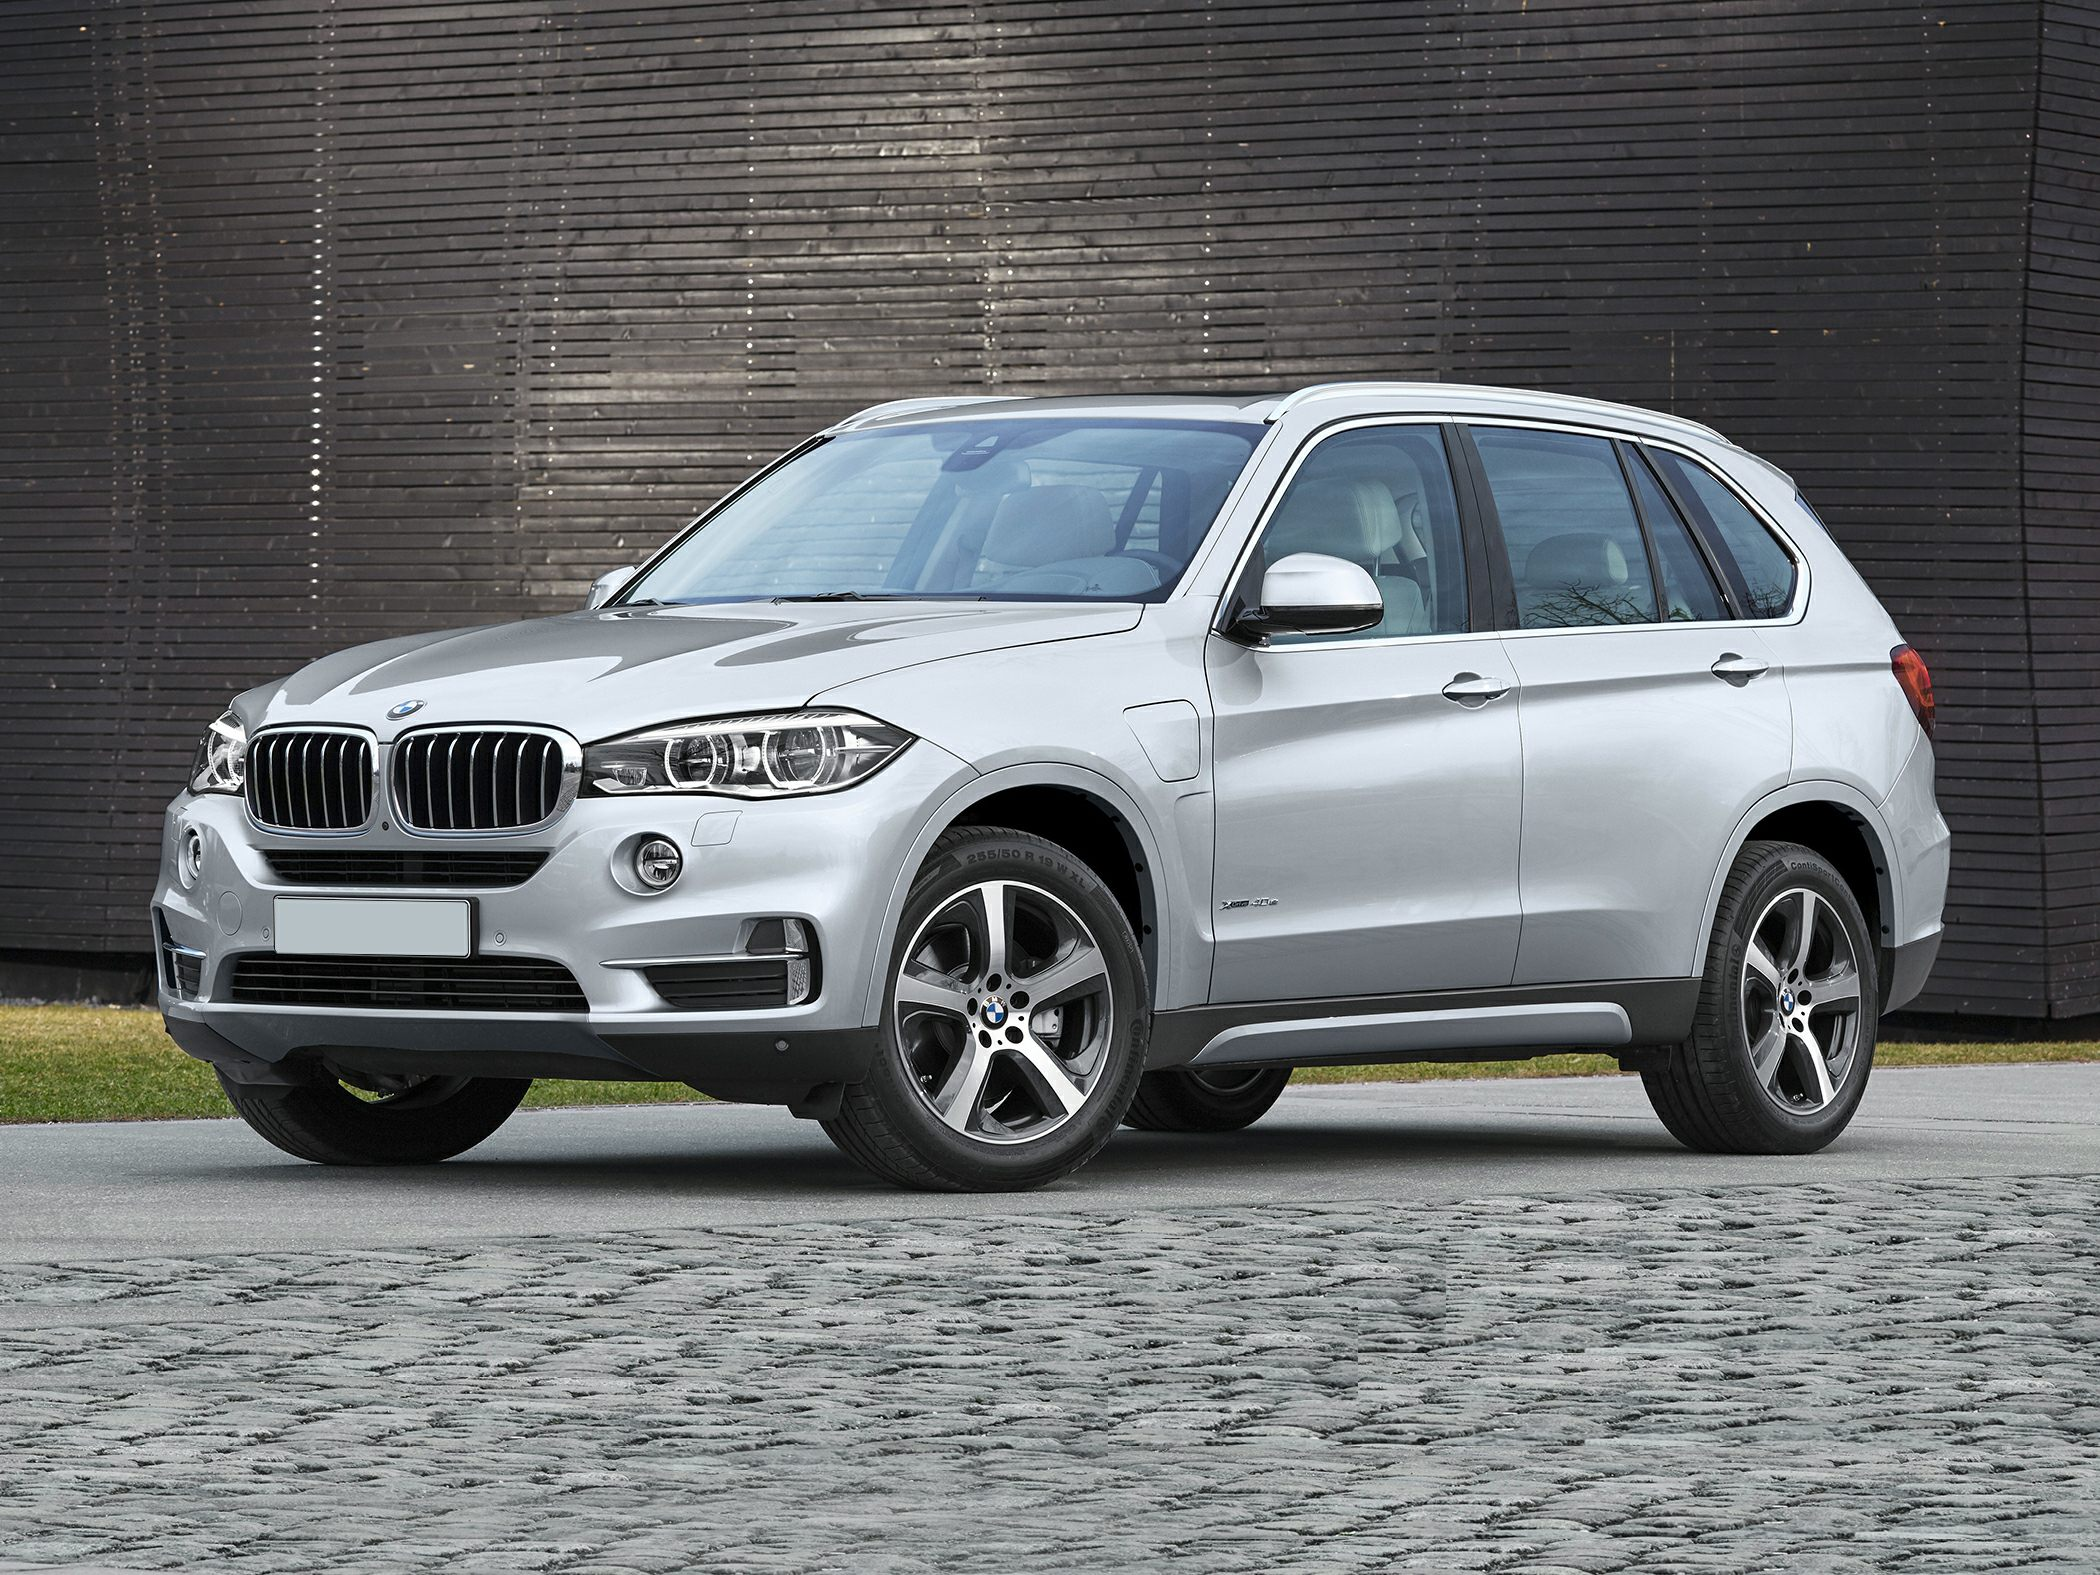 2017 bmw x5 edrive deals prices incentives leases overview carsdirect. Black Bedroom Furniture Sets. Home Design Ideas